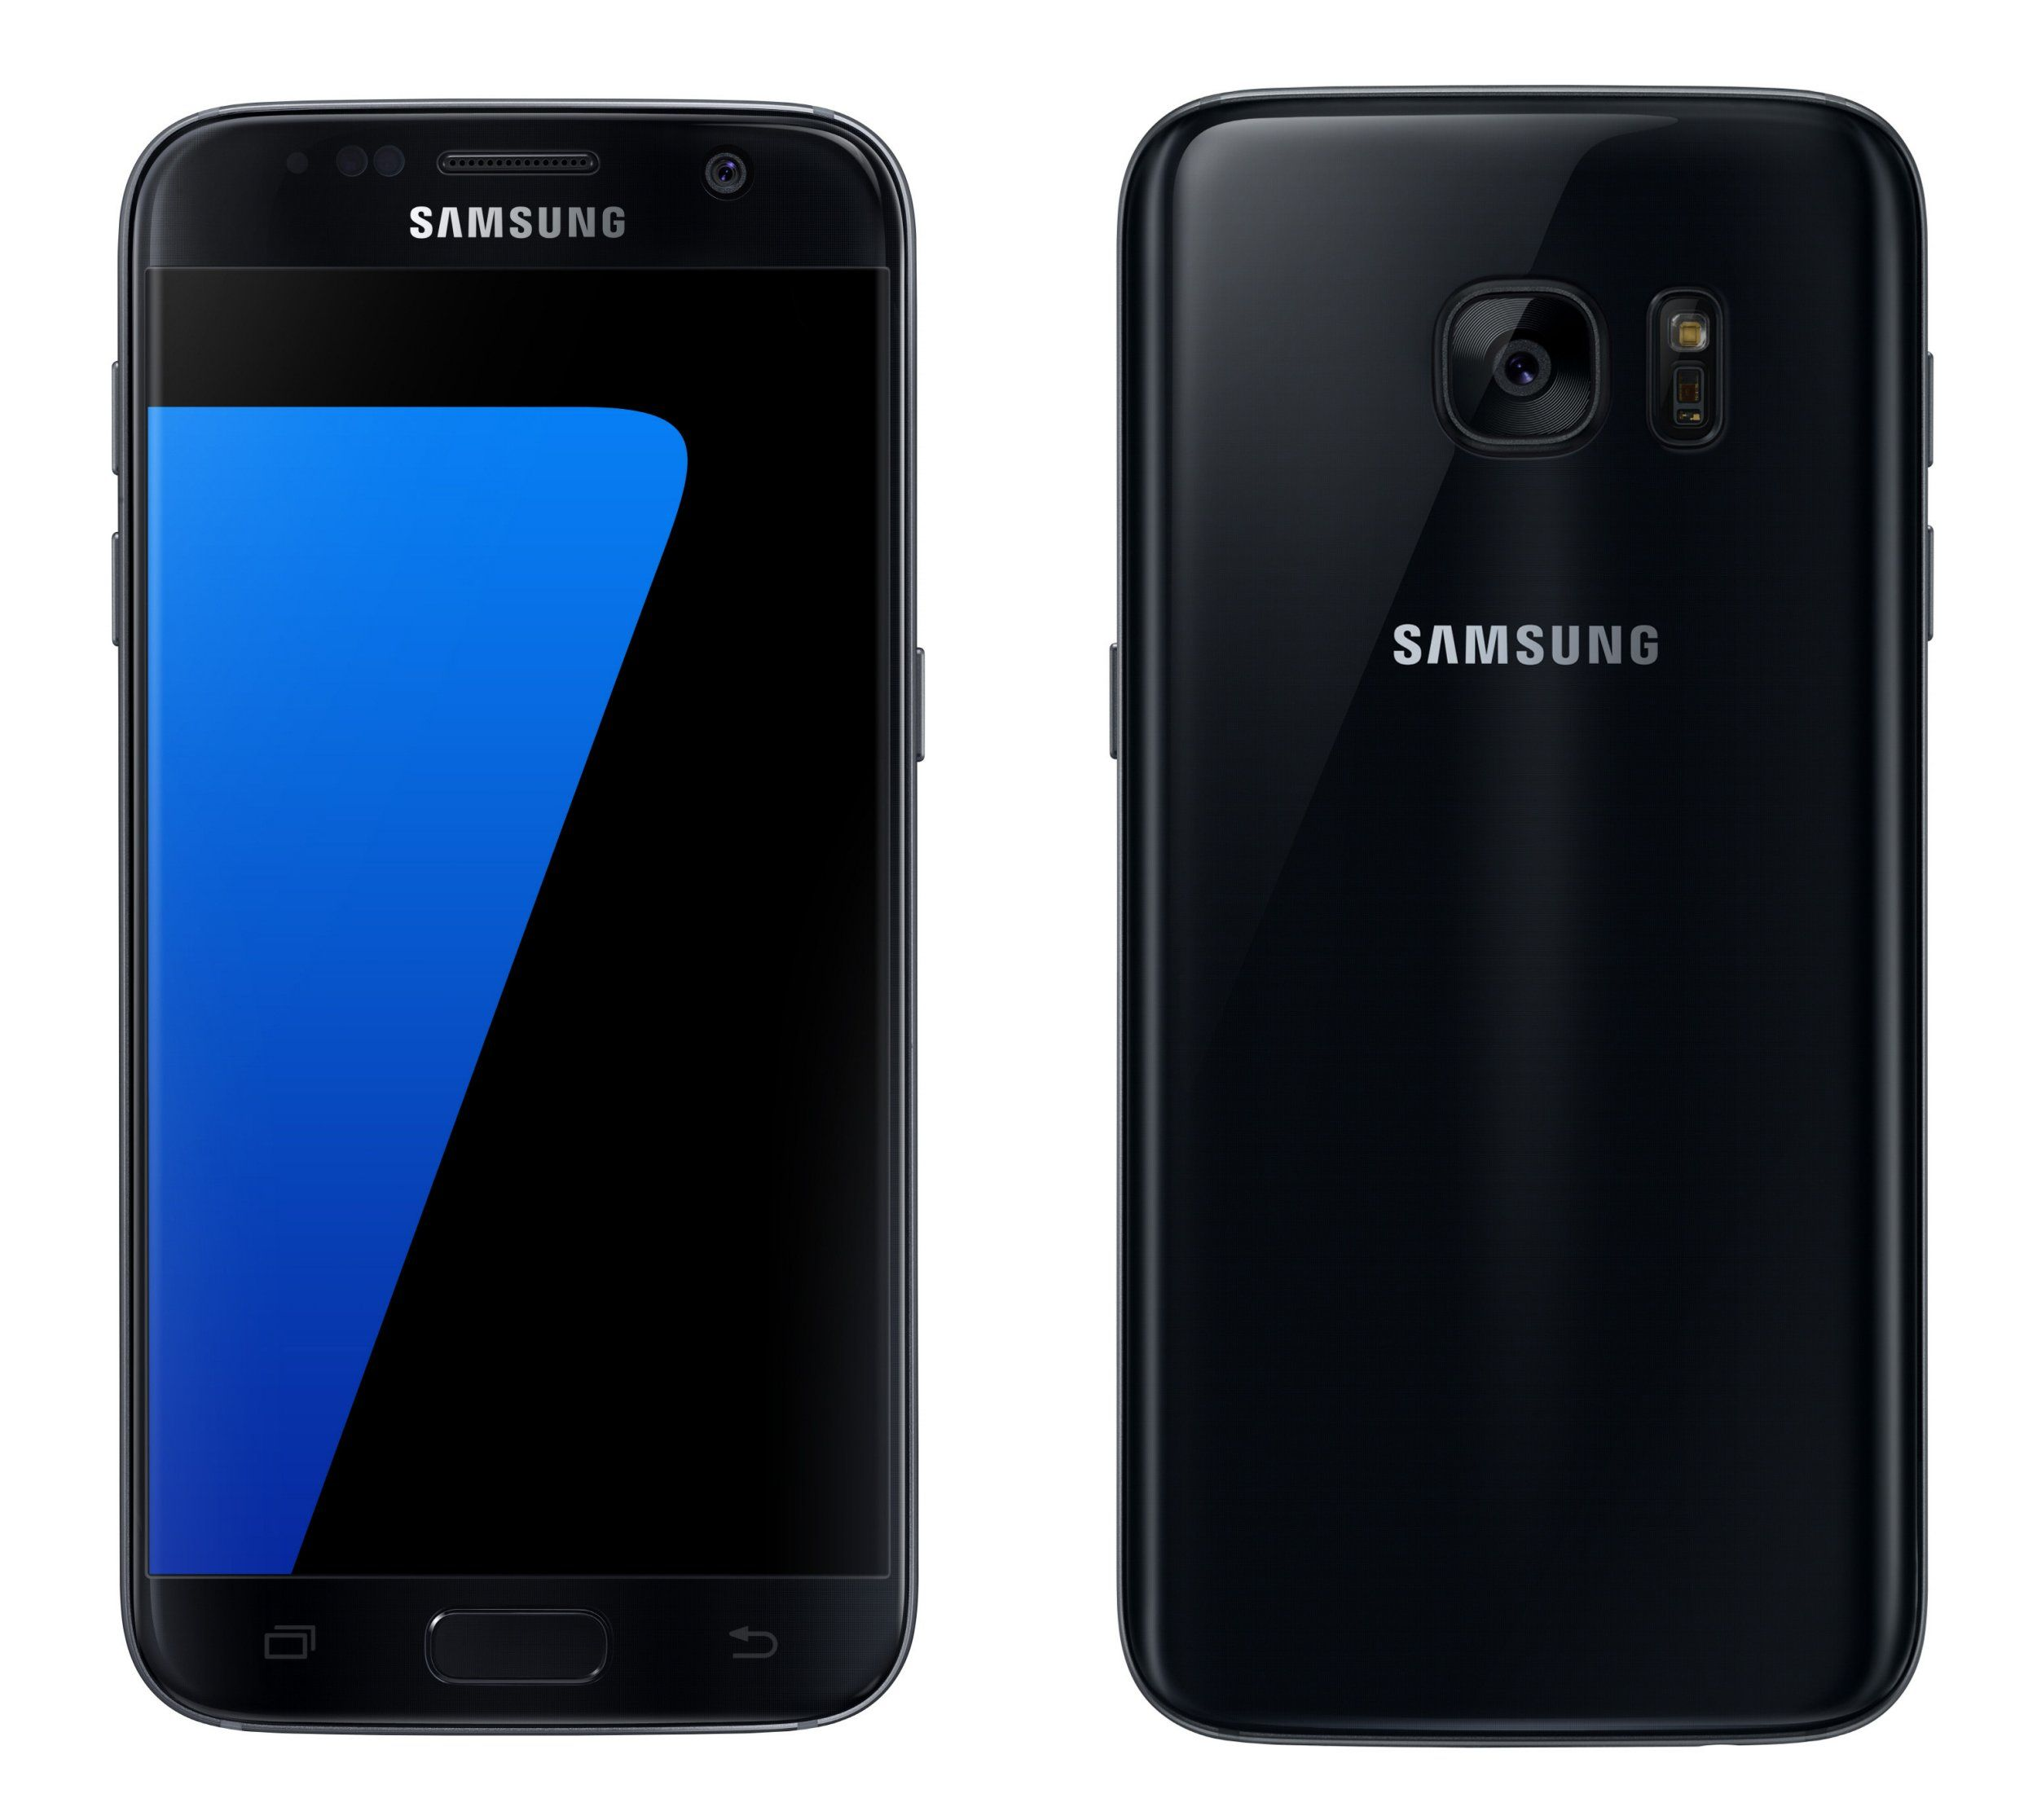 Update Samsung Galaxy S7 G930F to Android 8.0 Oreo via XenonHD ROM